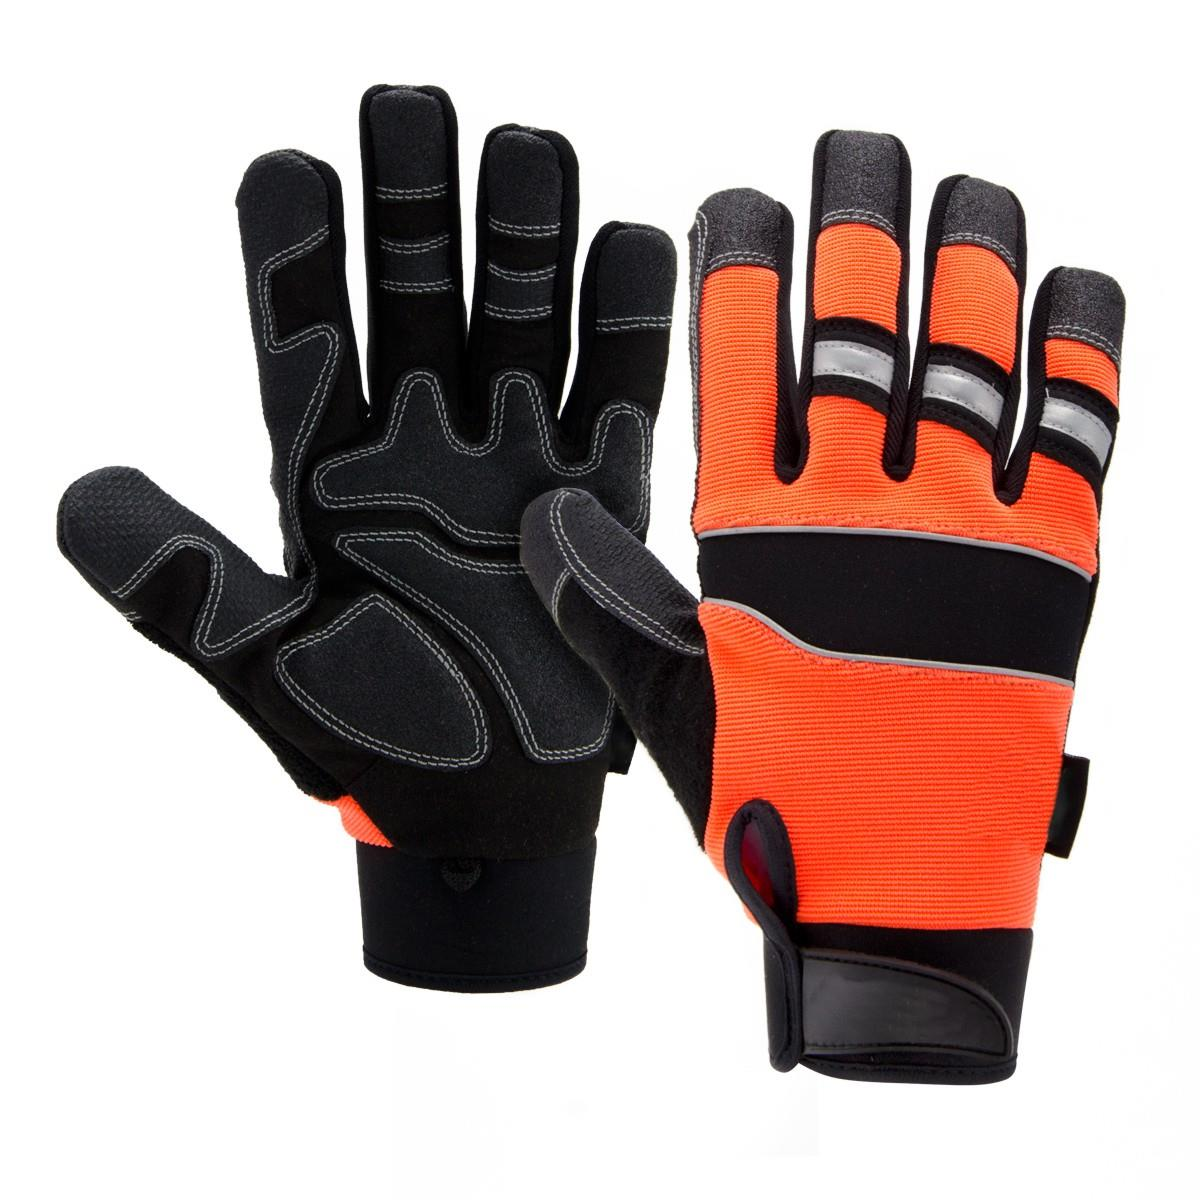 Mechanic Glove / Working Gloves / Electrical Work Gloves